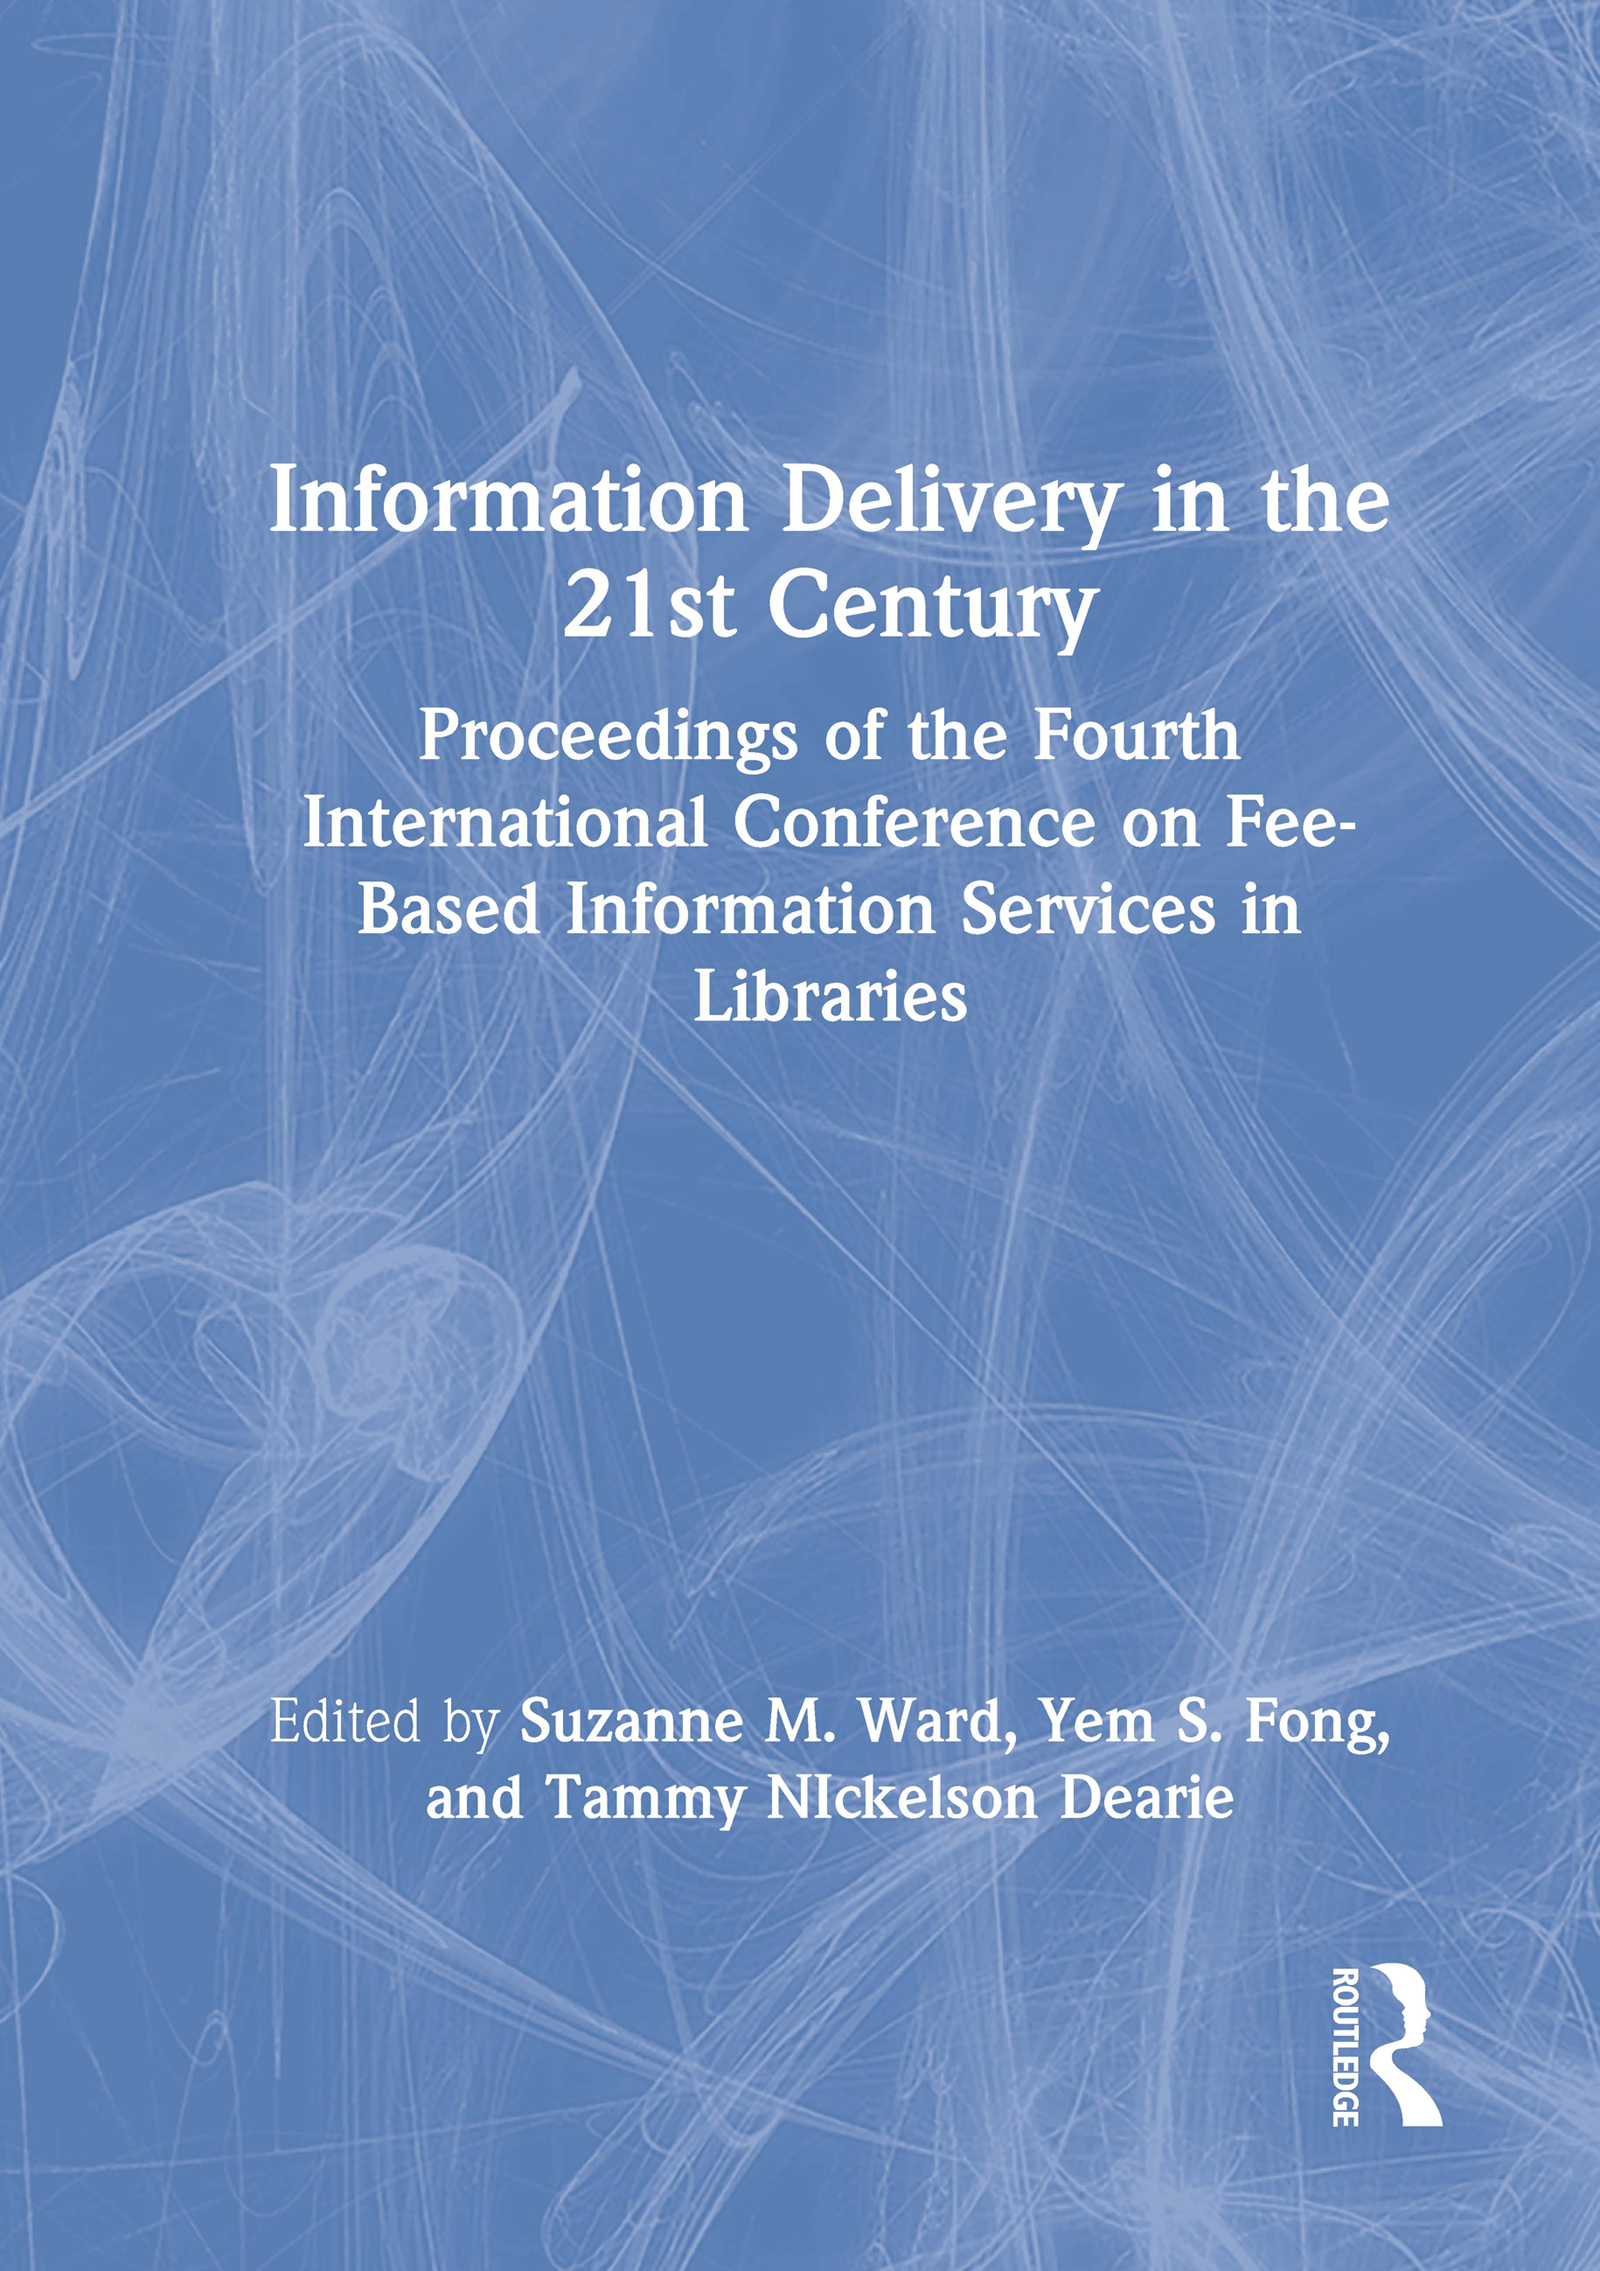 Information Delivery in the 21st Century: Proceedings of the Fourth International Conference on Fee-Based Information Services in Libraries (Paperback) book cover